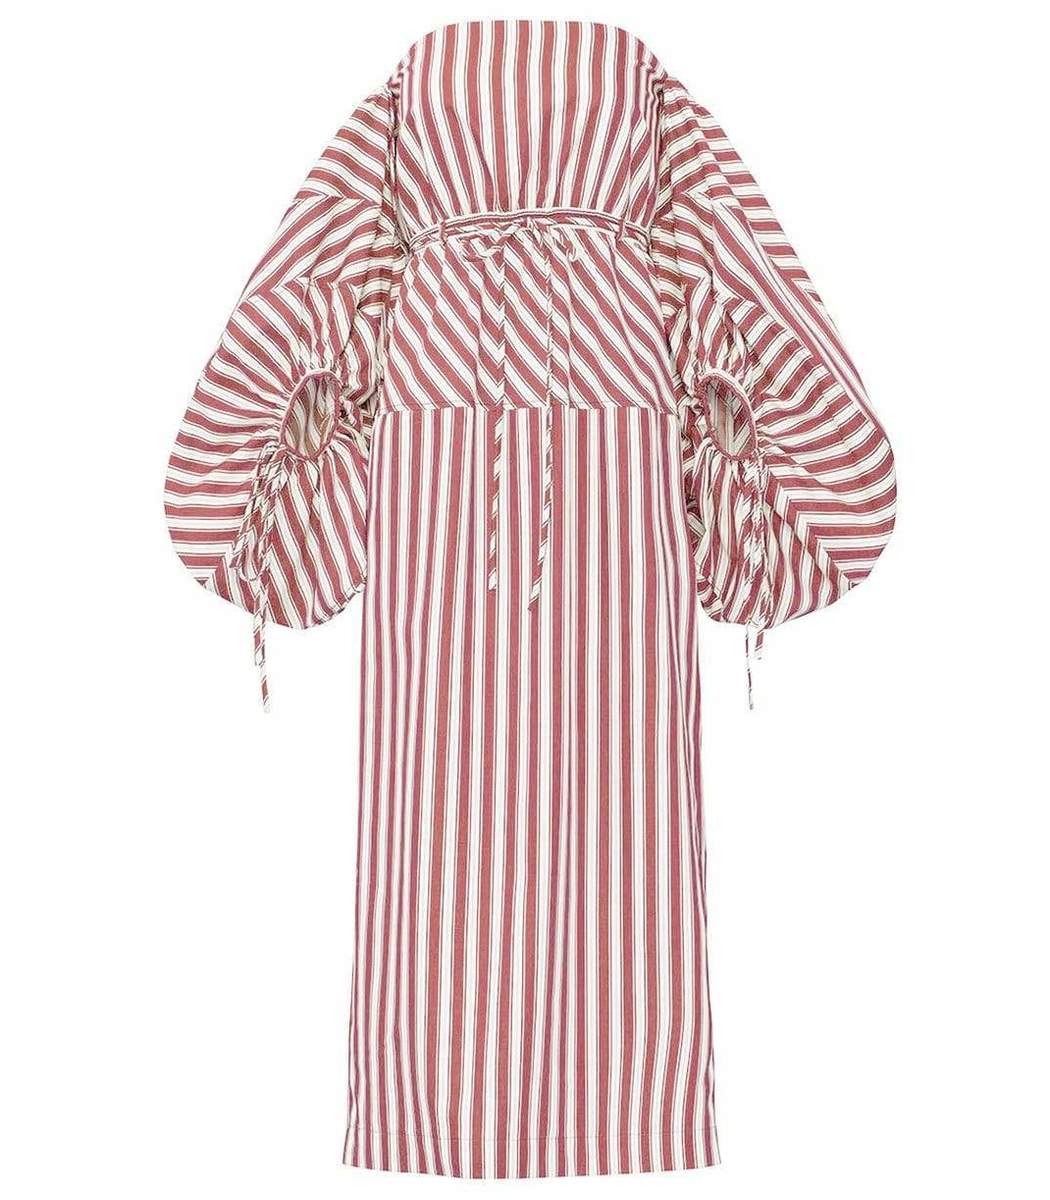 Rosie Assoulin Red and White Striped Balloon Sleeve Midi Dress